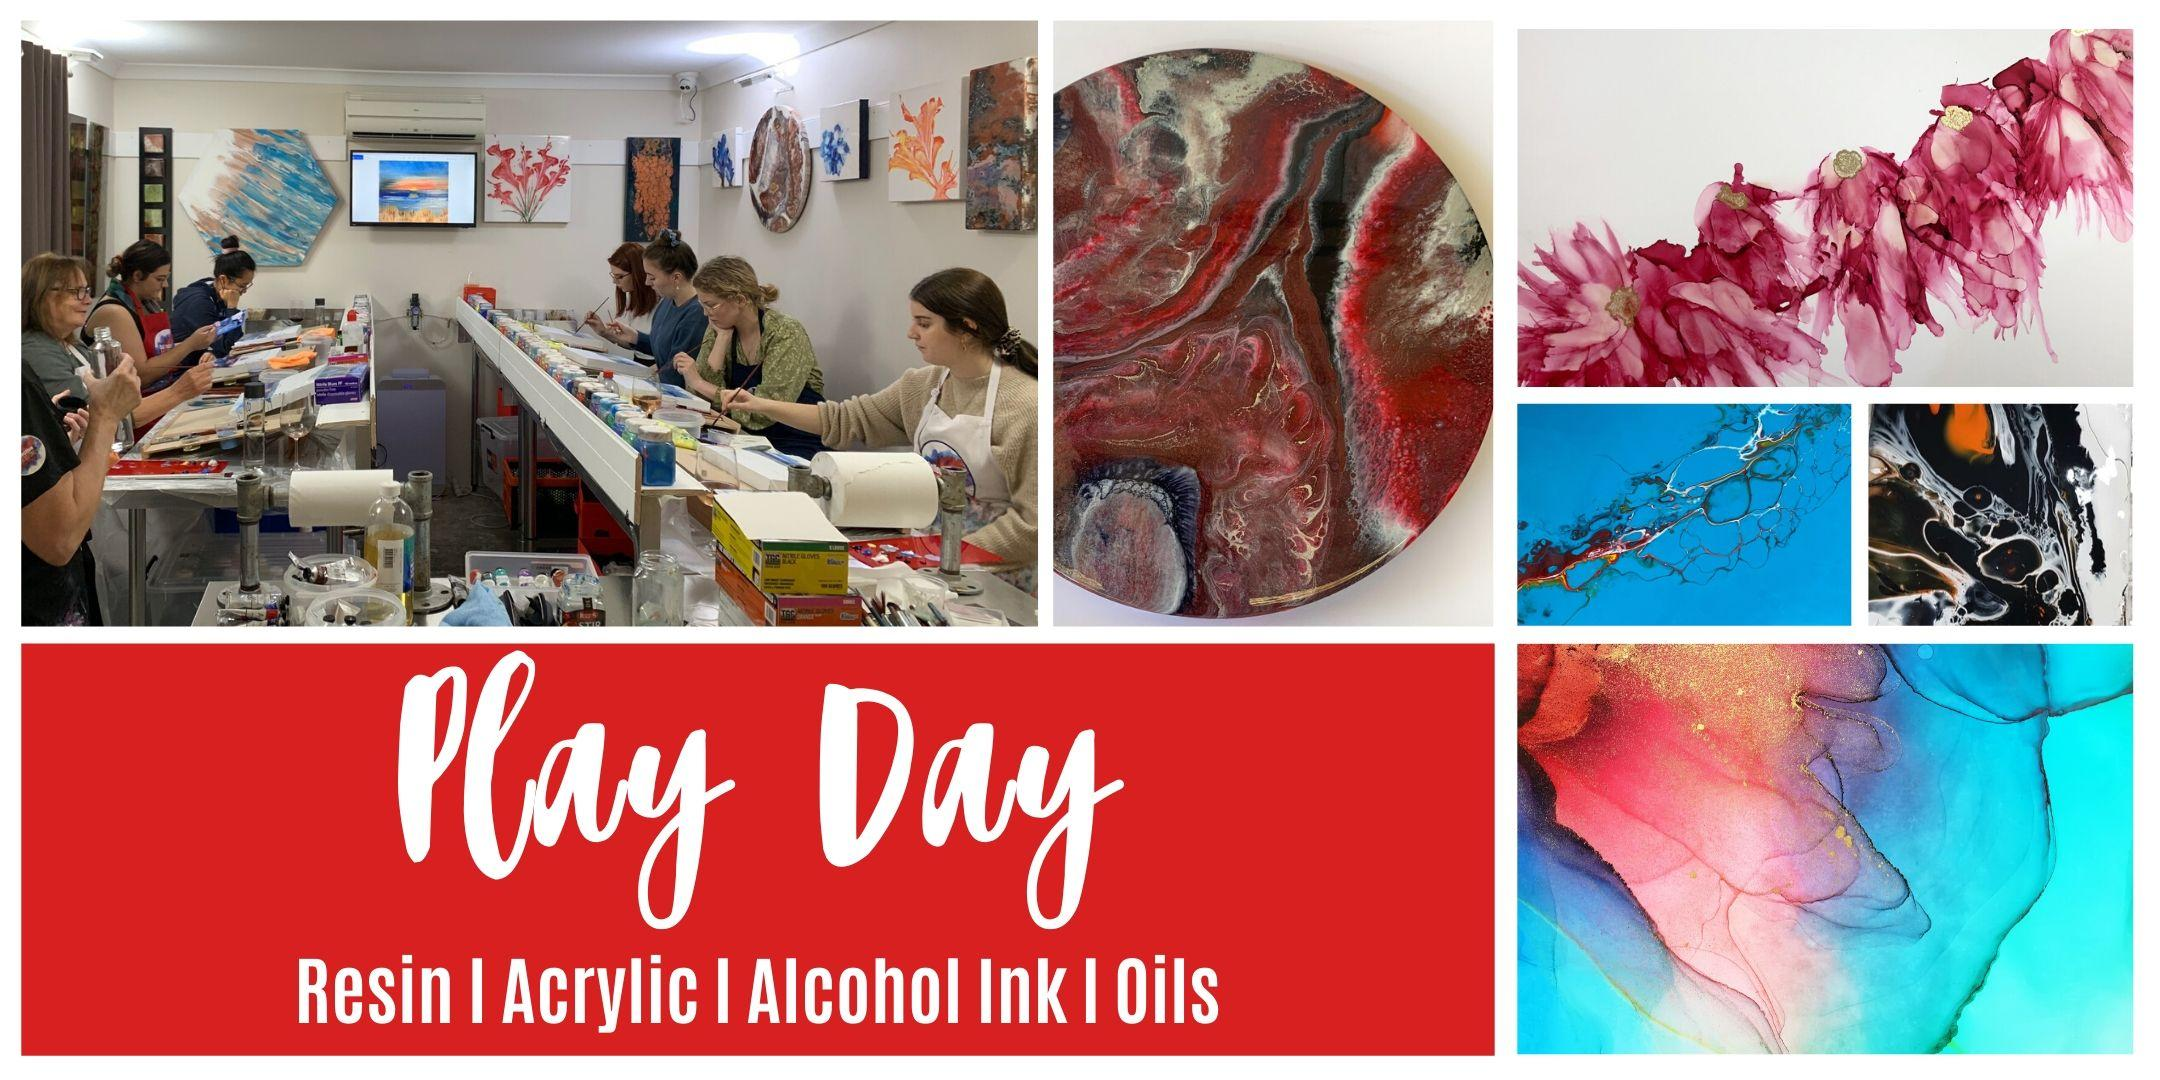 OPEN DAY - Creating Art Your Way